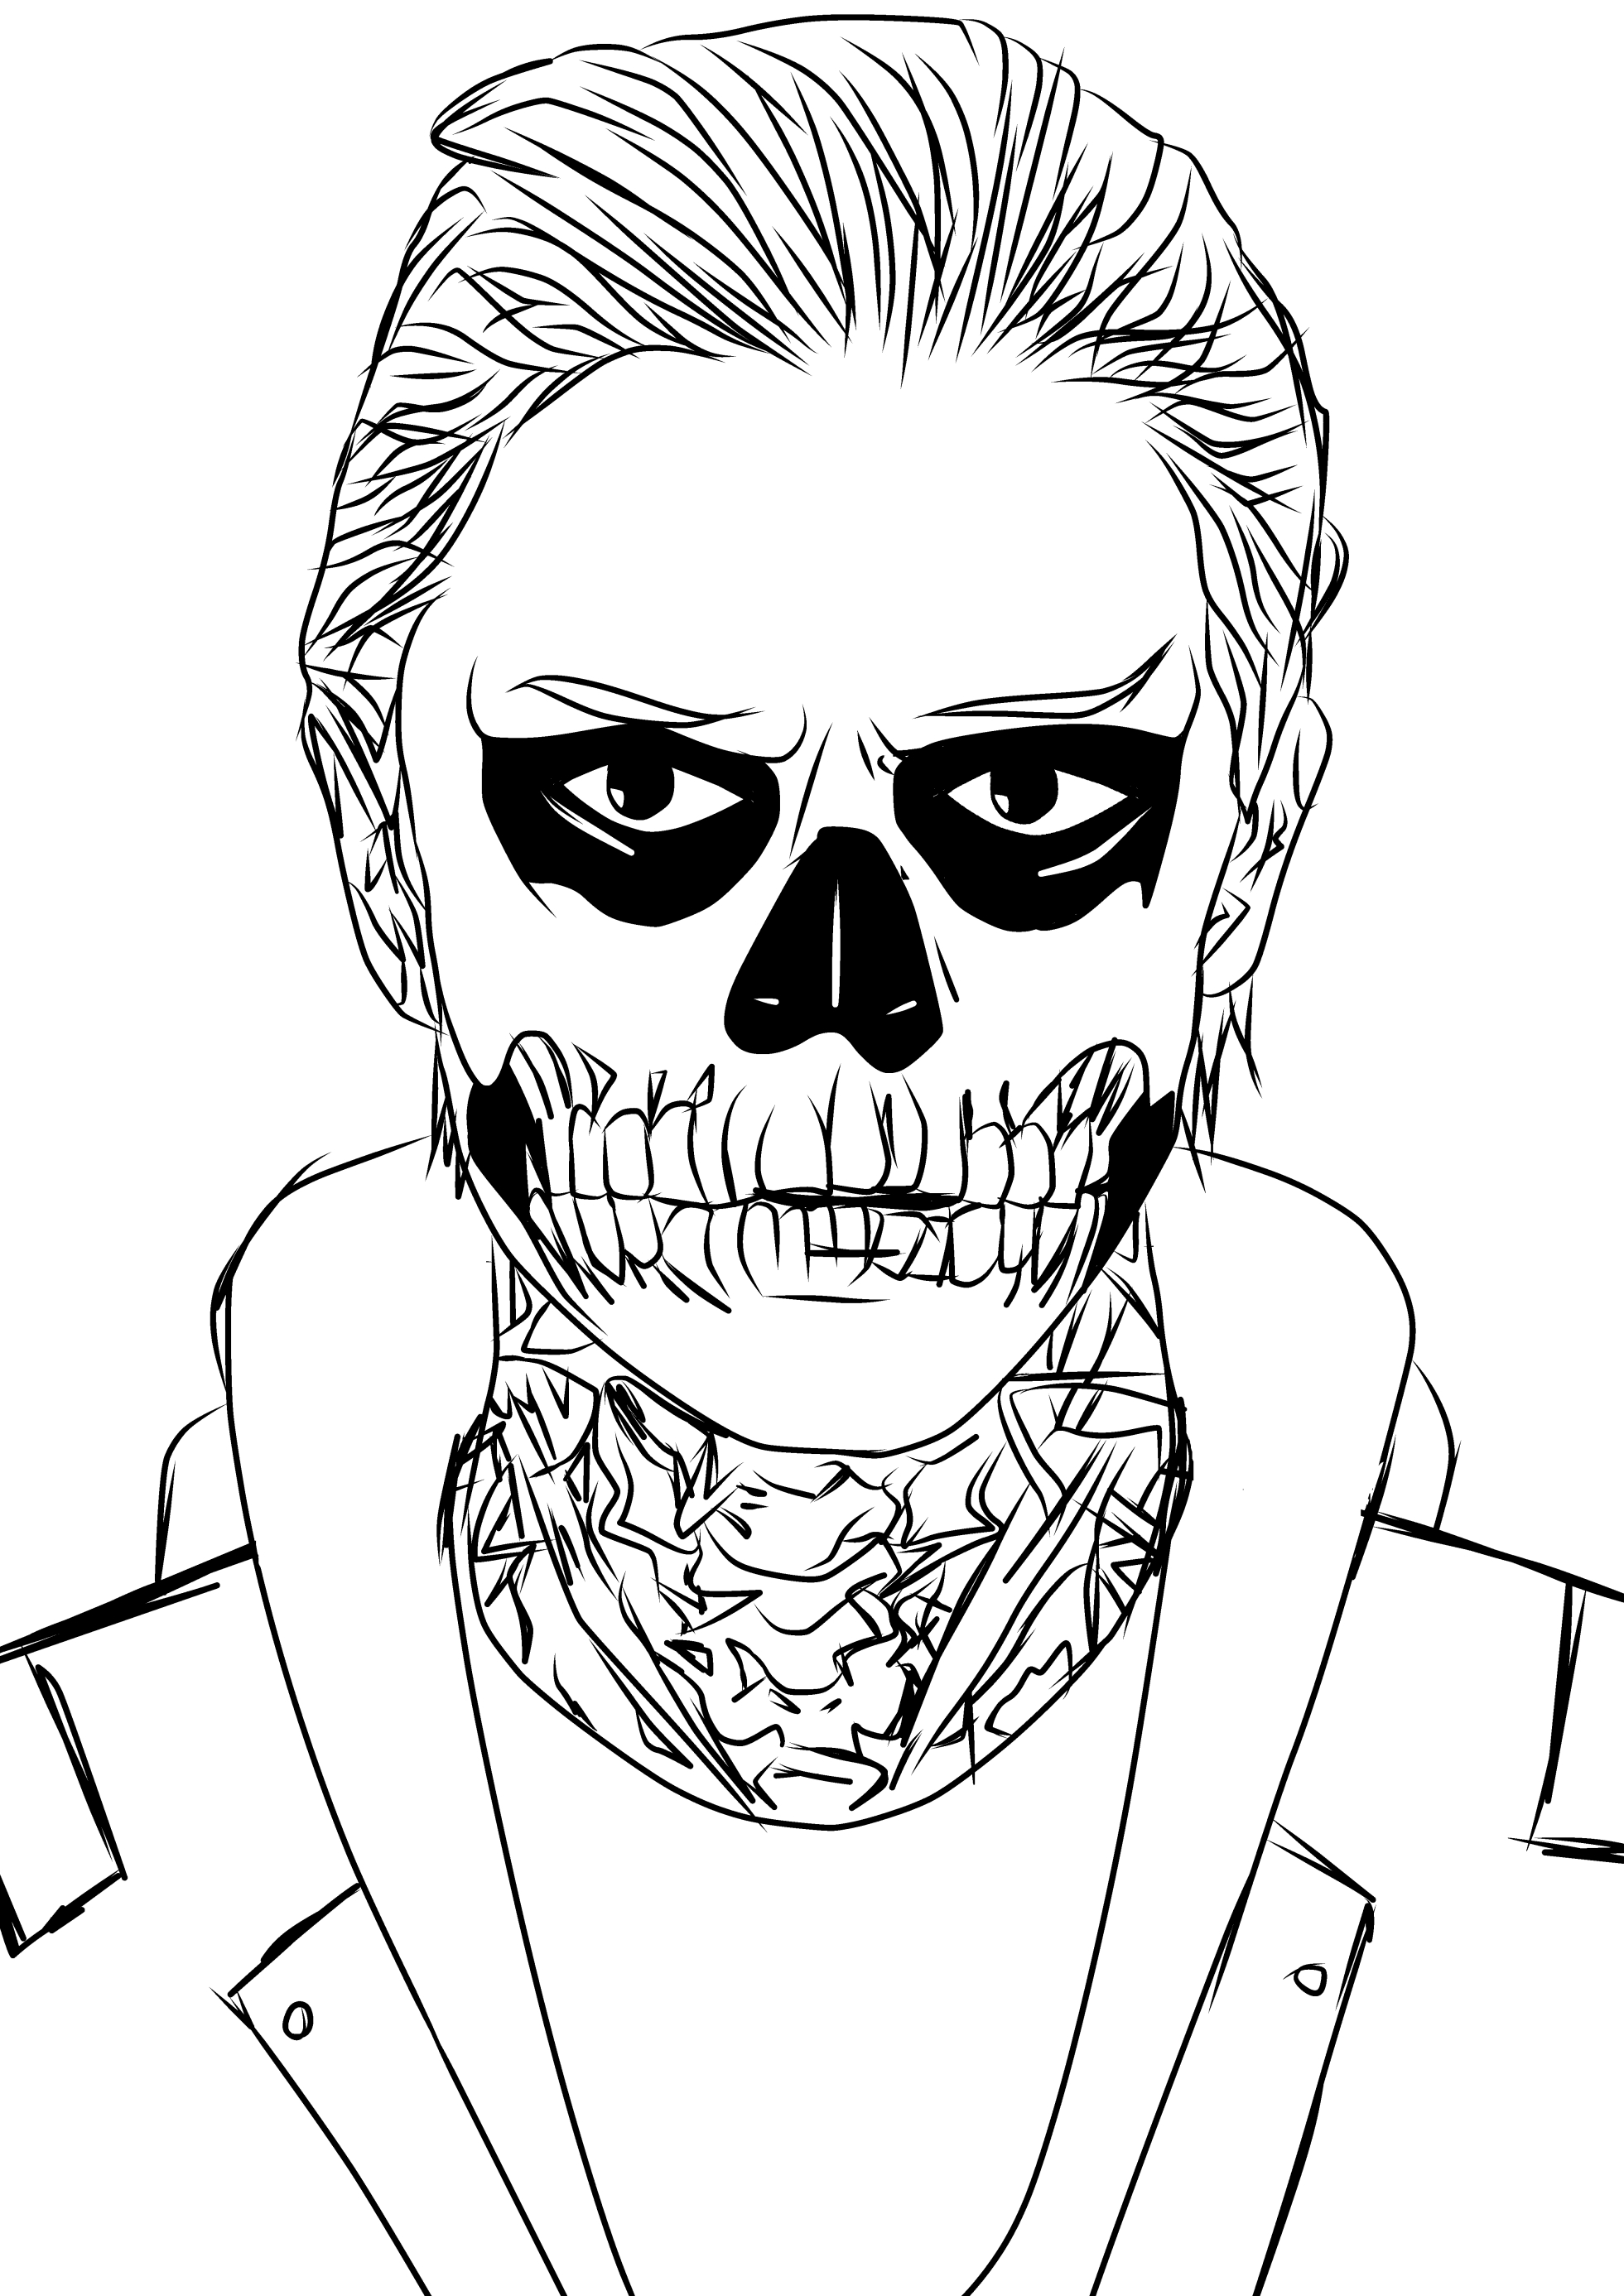 coloring pages from horror movies - photo#36